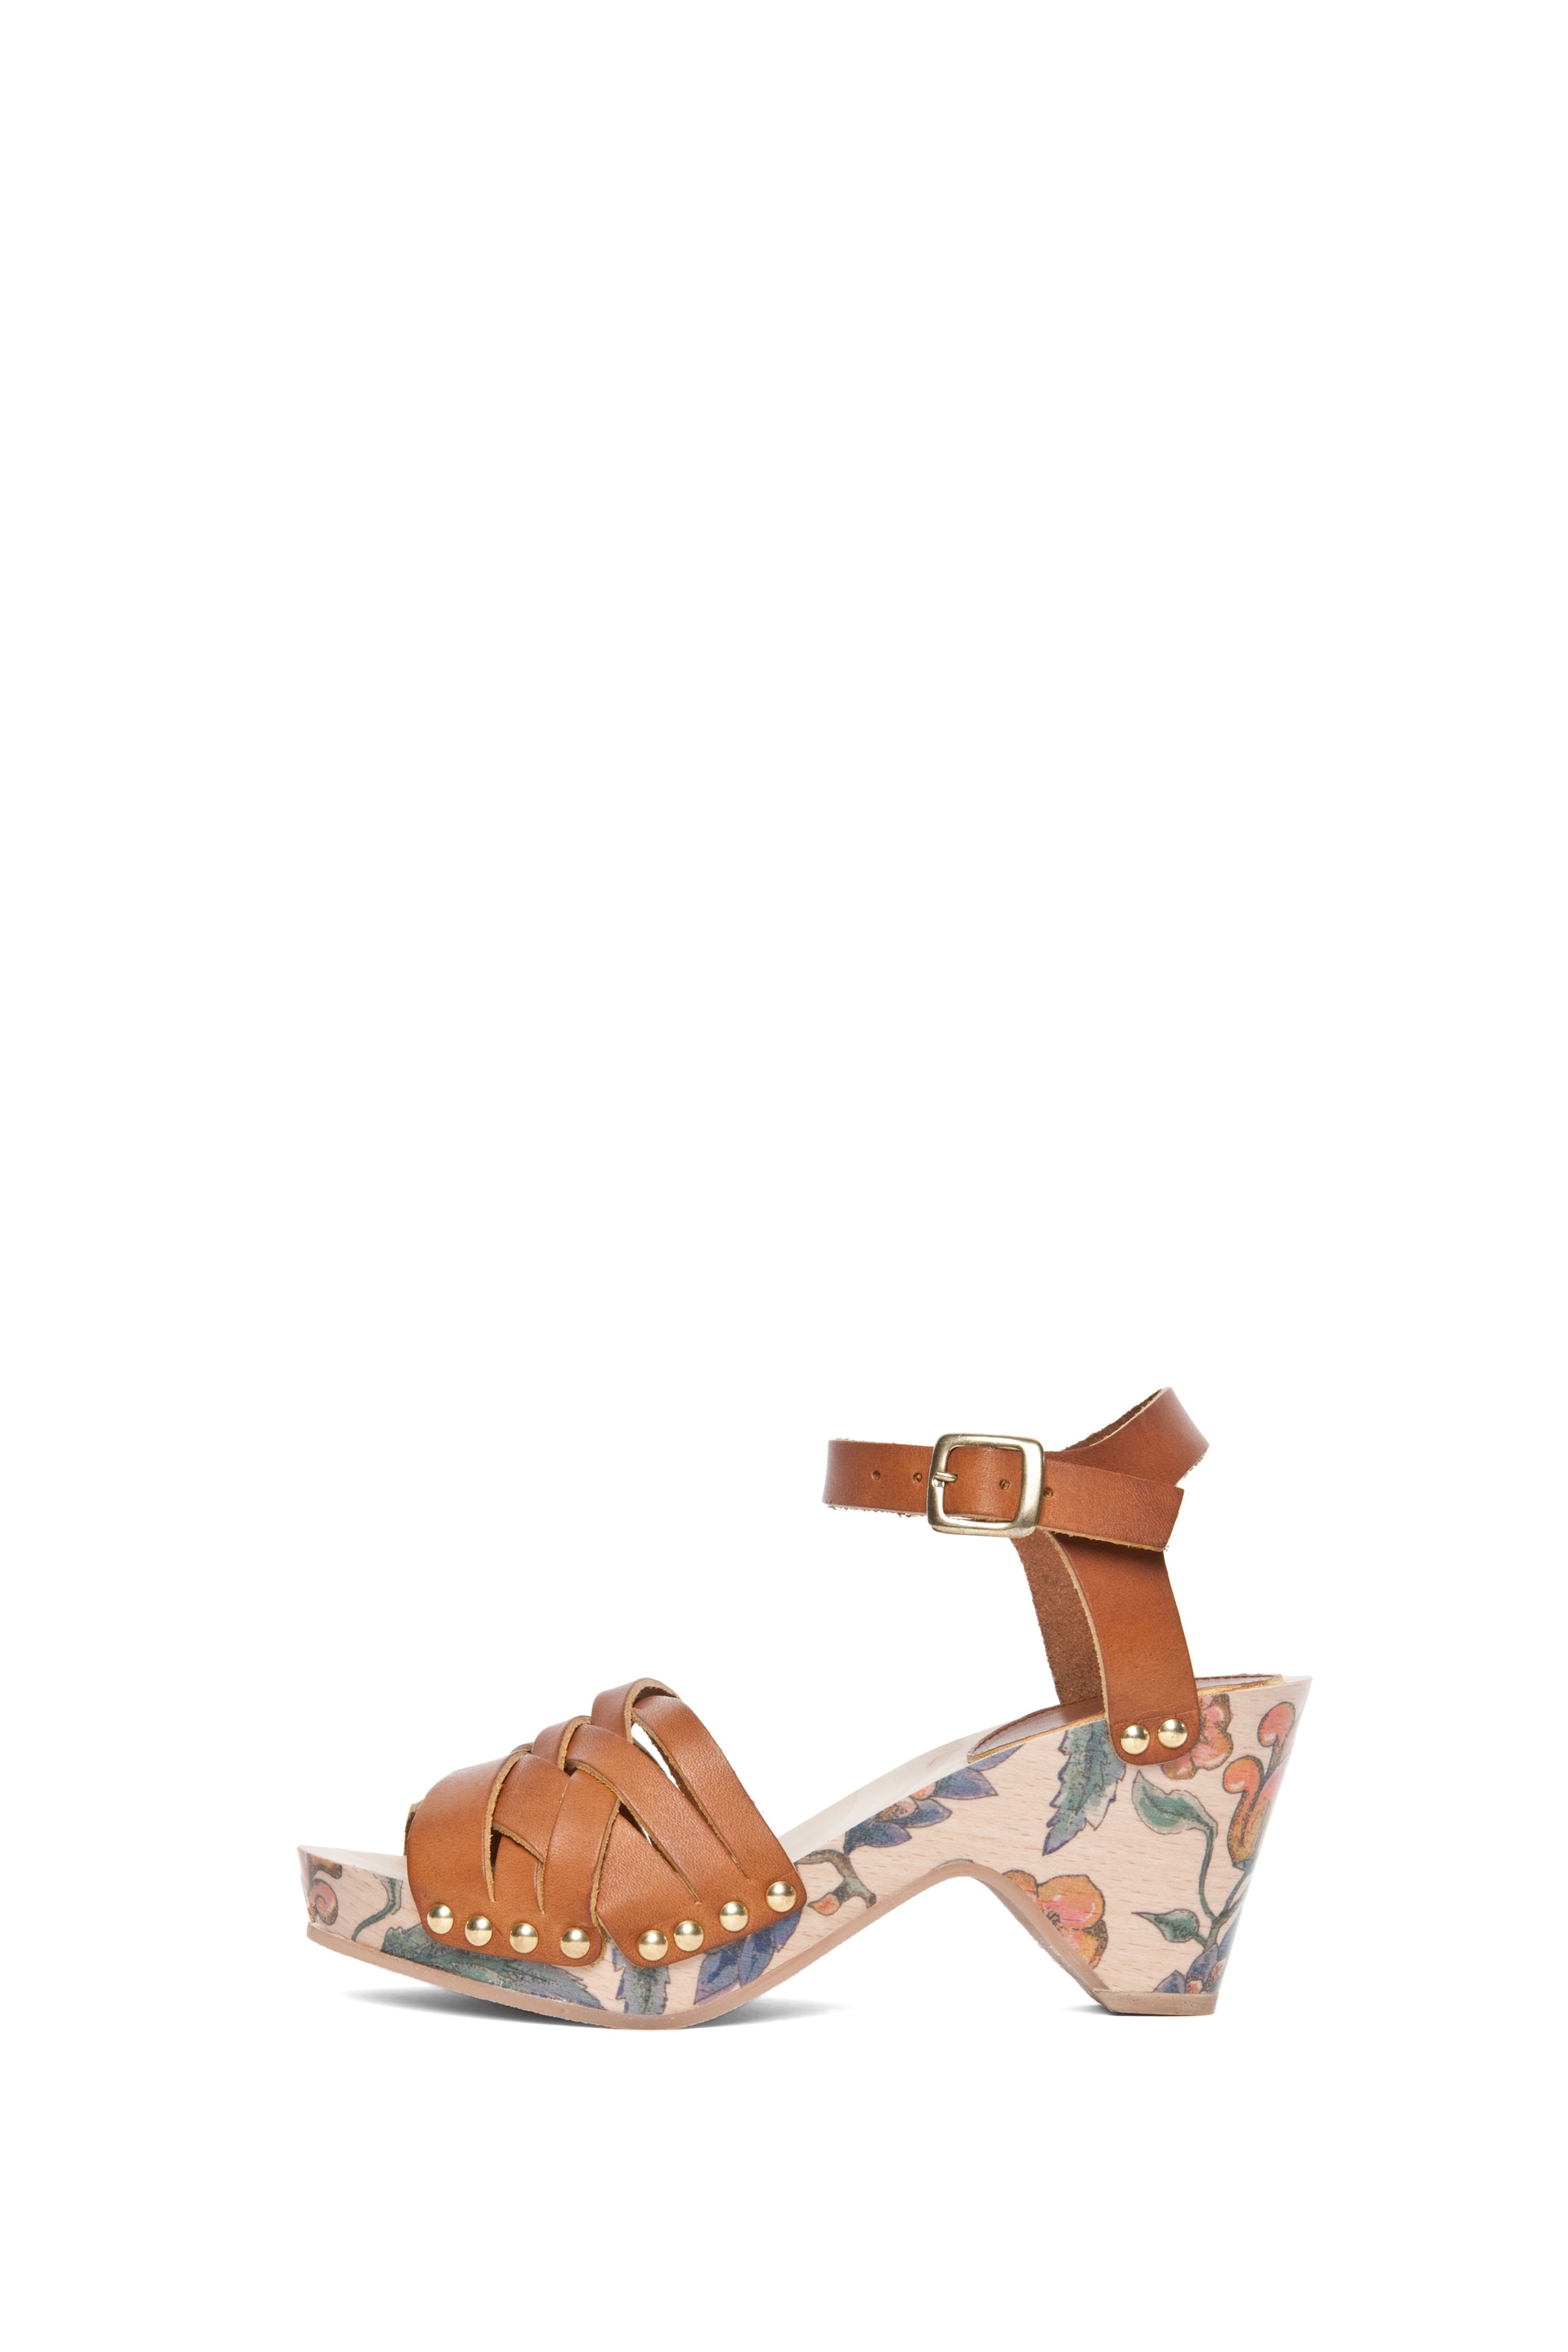 Image 1 of Isabel Marant Silway Sandal in Henna